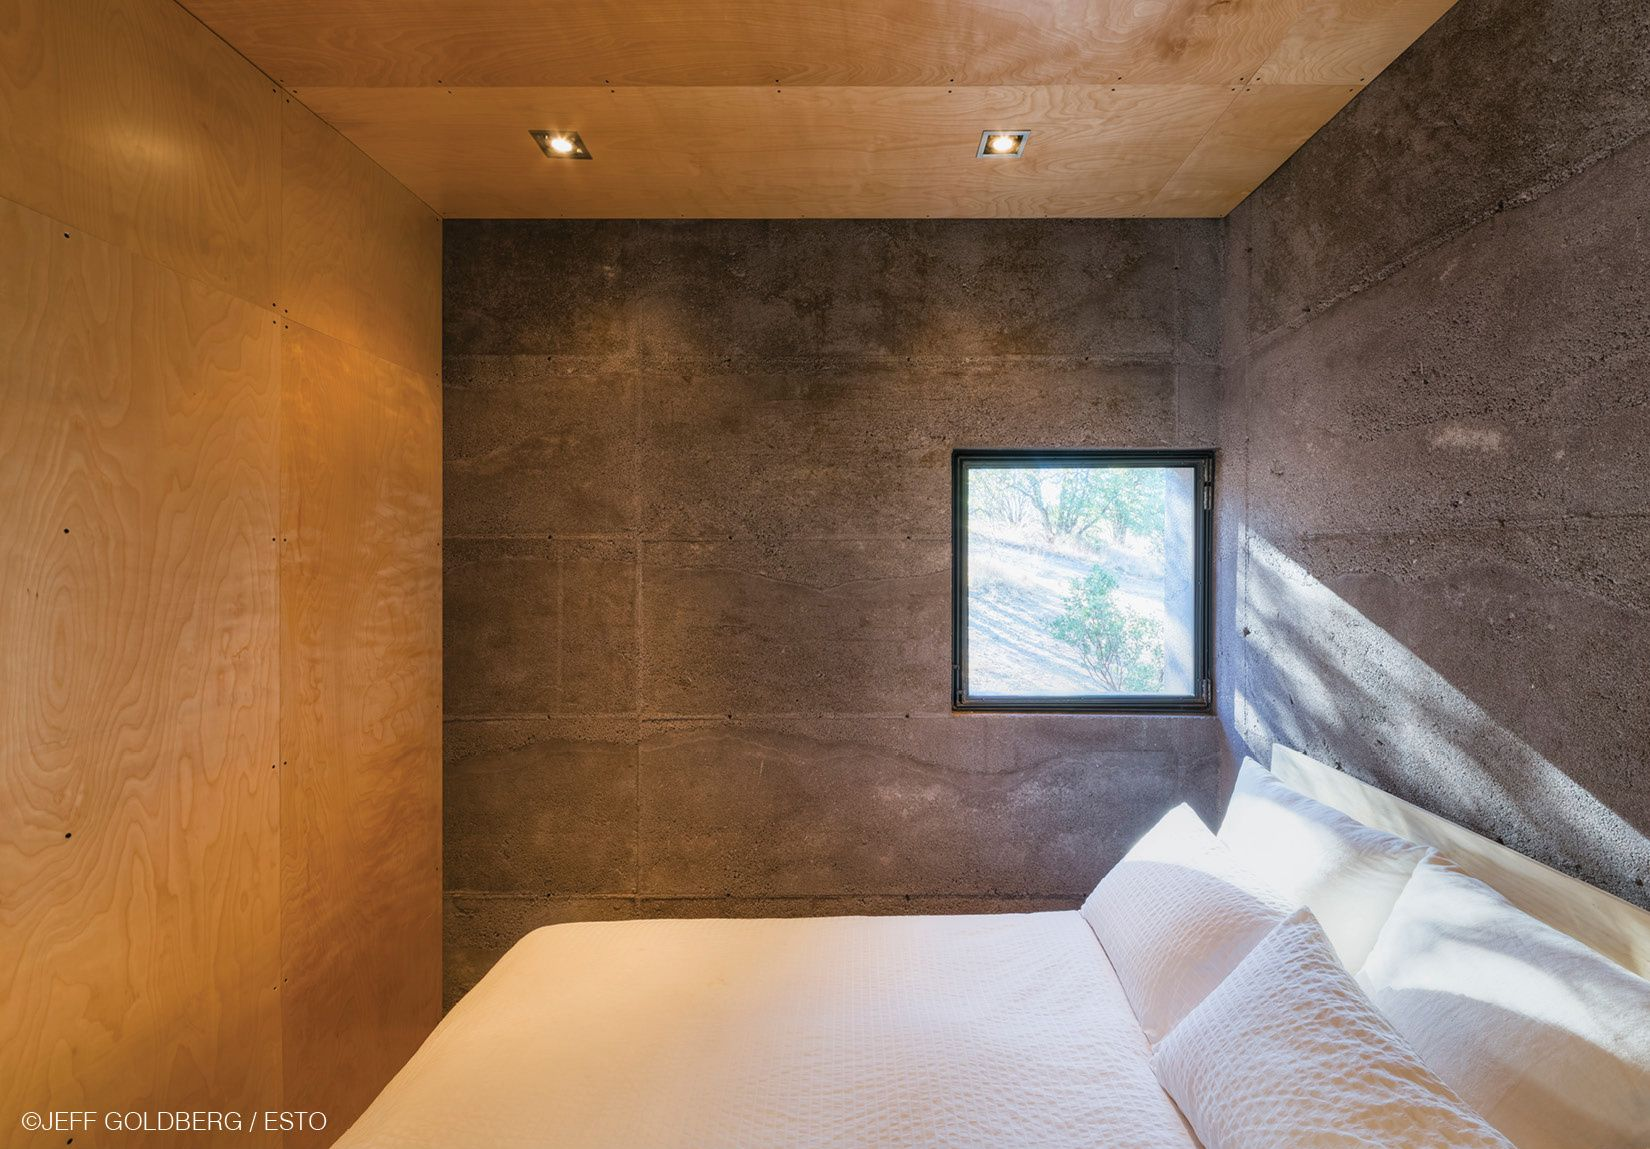 Architecture, DUST, Casa Caldera, Tucson, Arizona, Design, Residential,  Modern